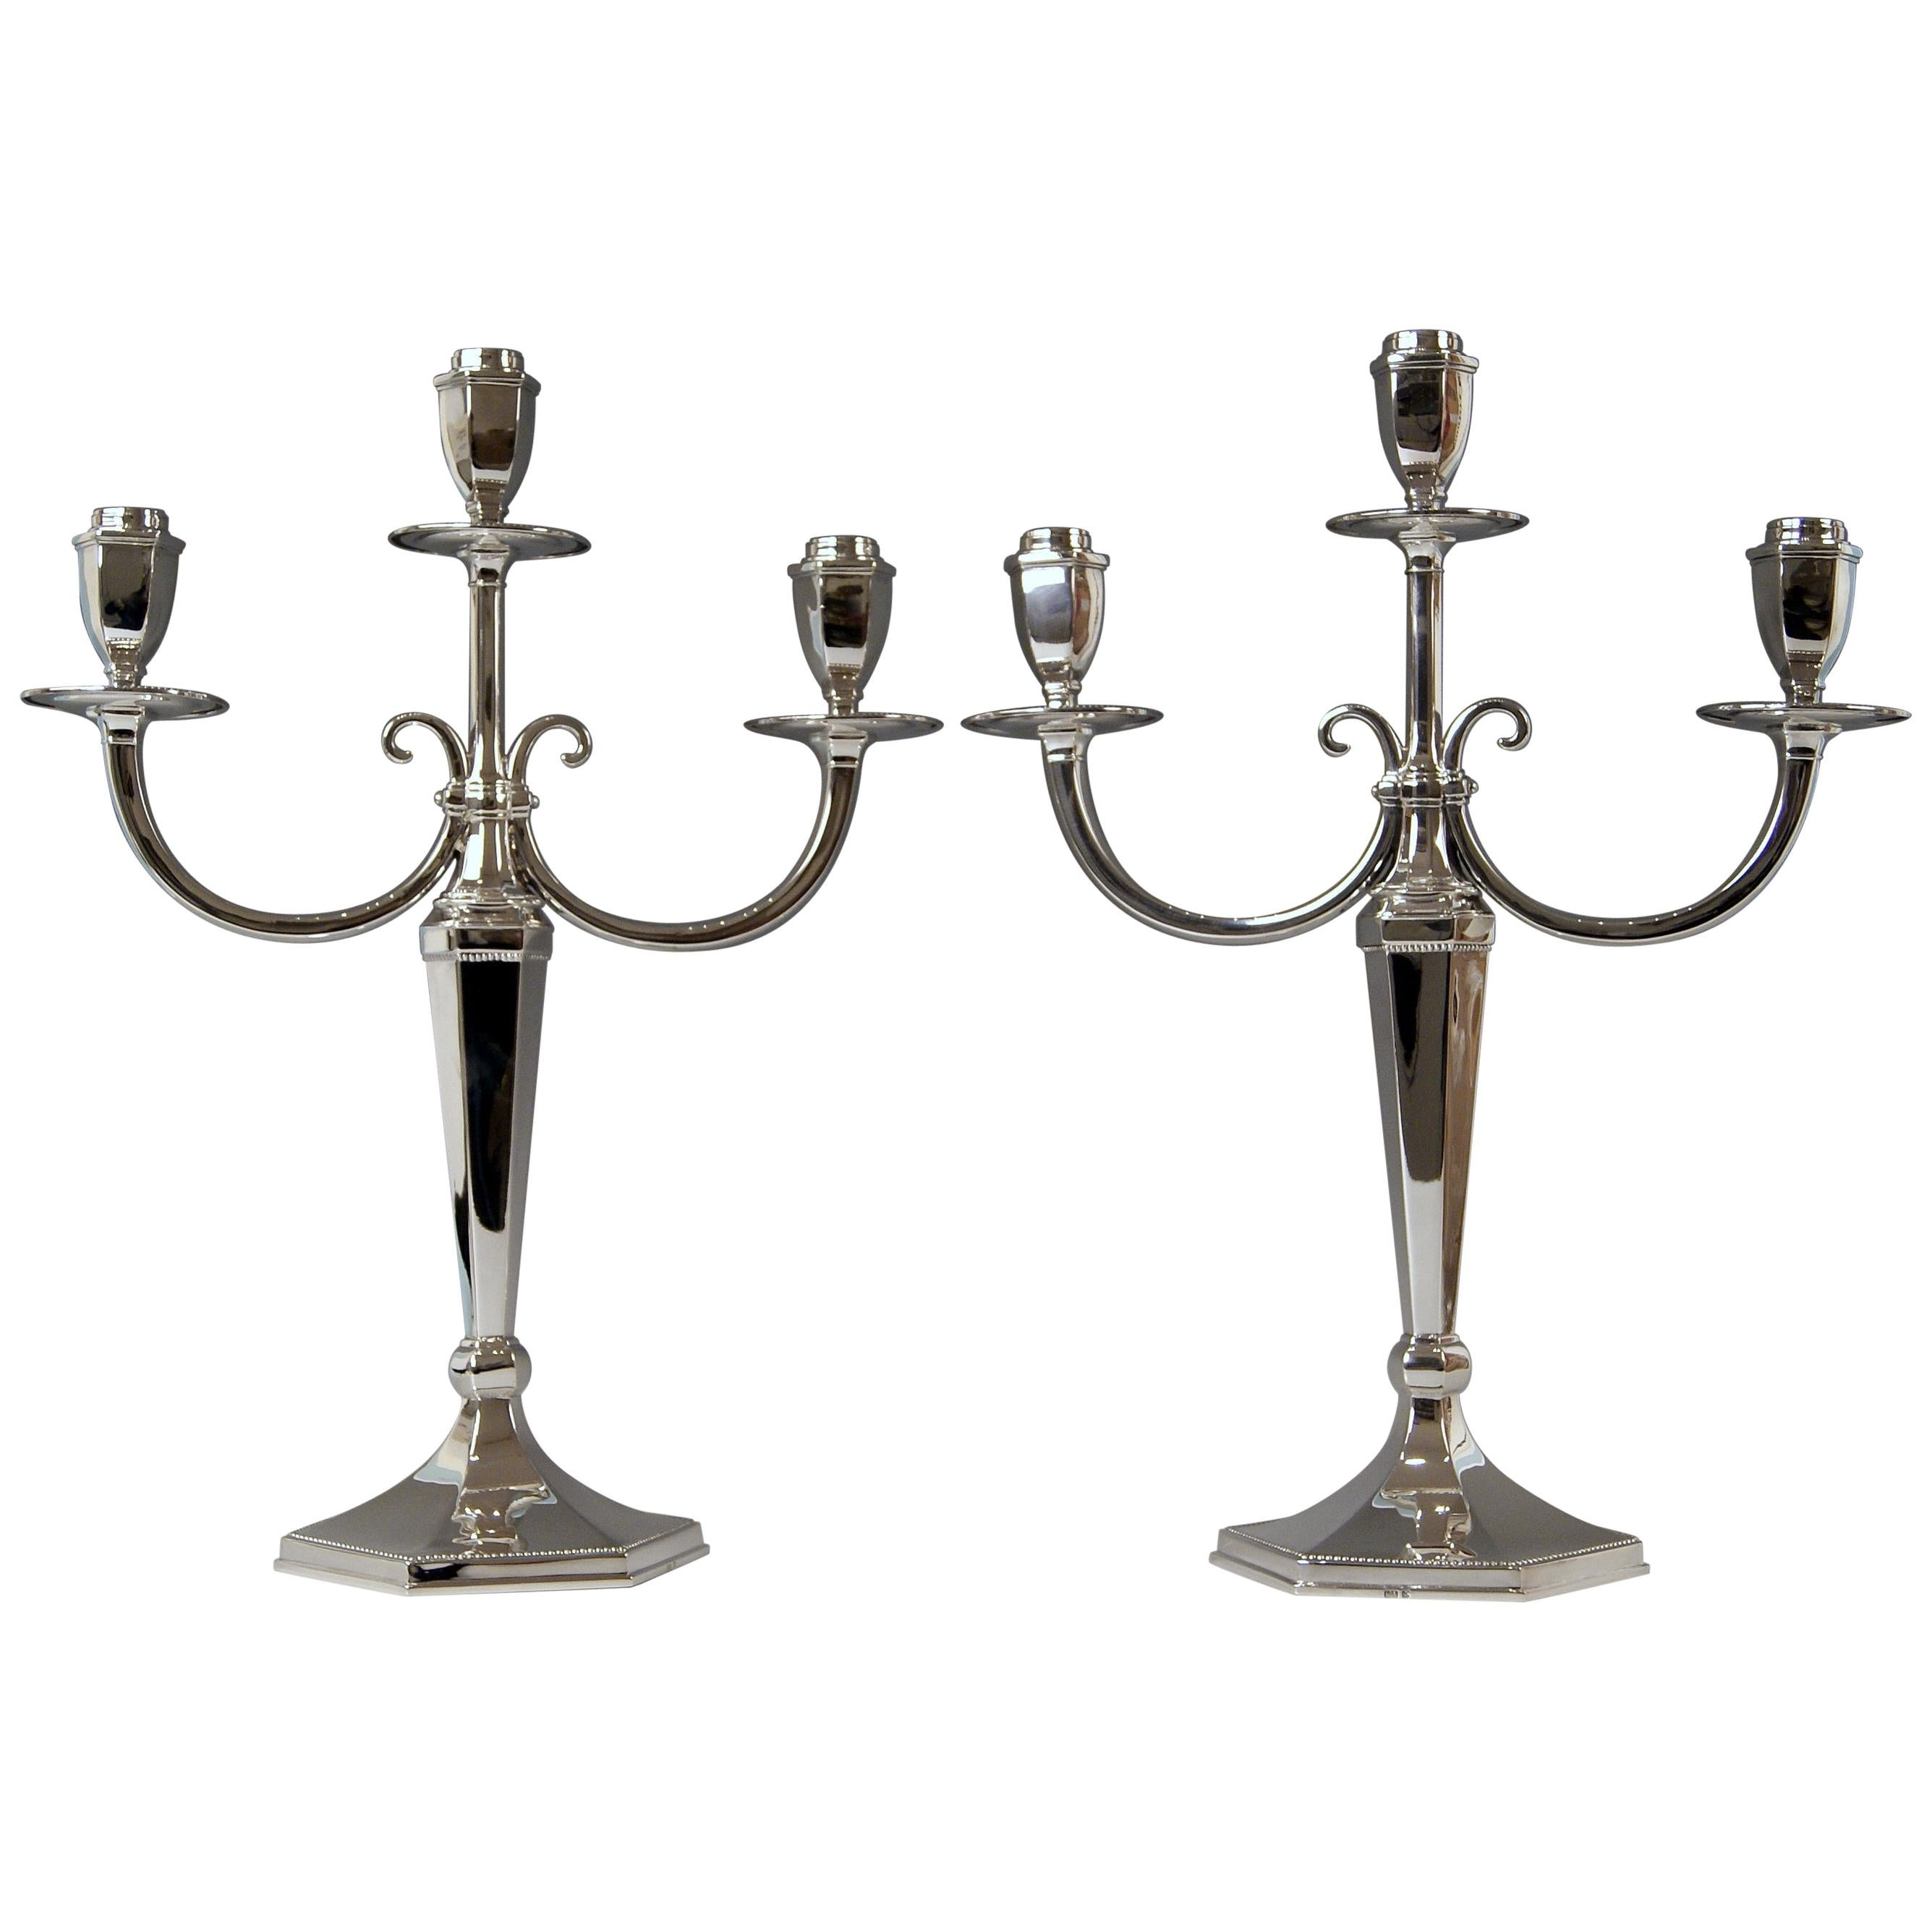 Silver Sterling Art Deco Pair of Candlesticks Three Arms Possibly, Spain